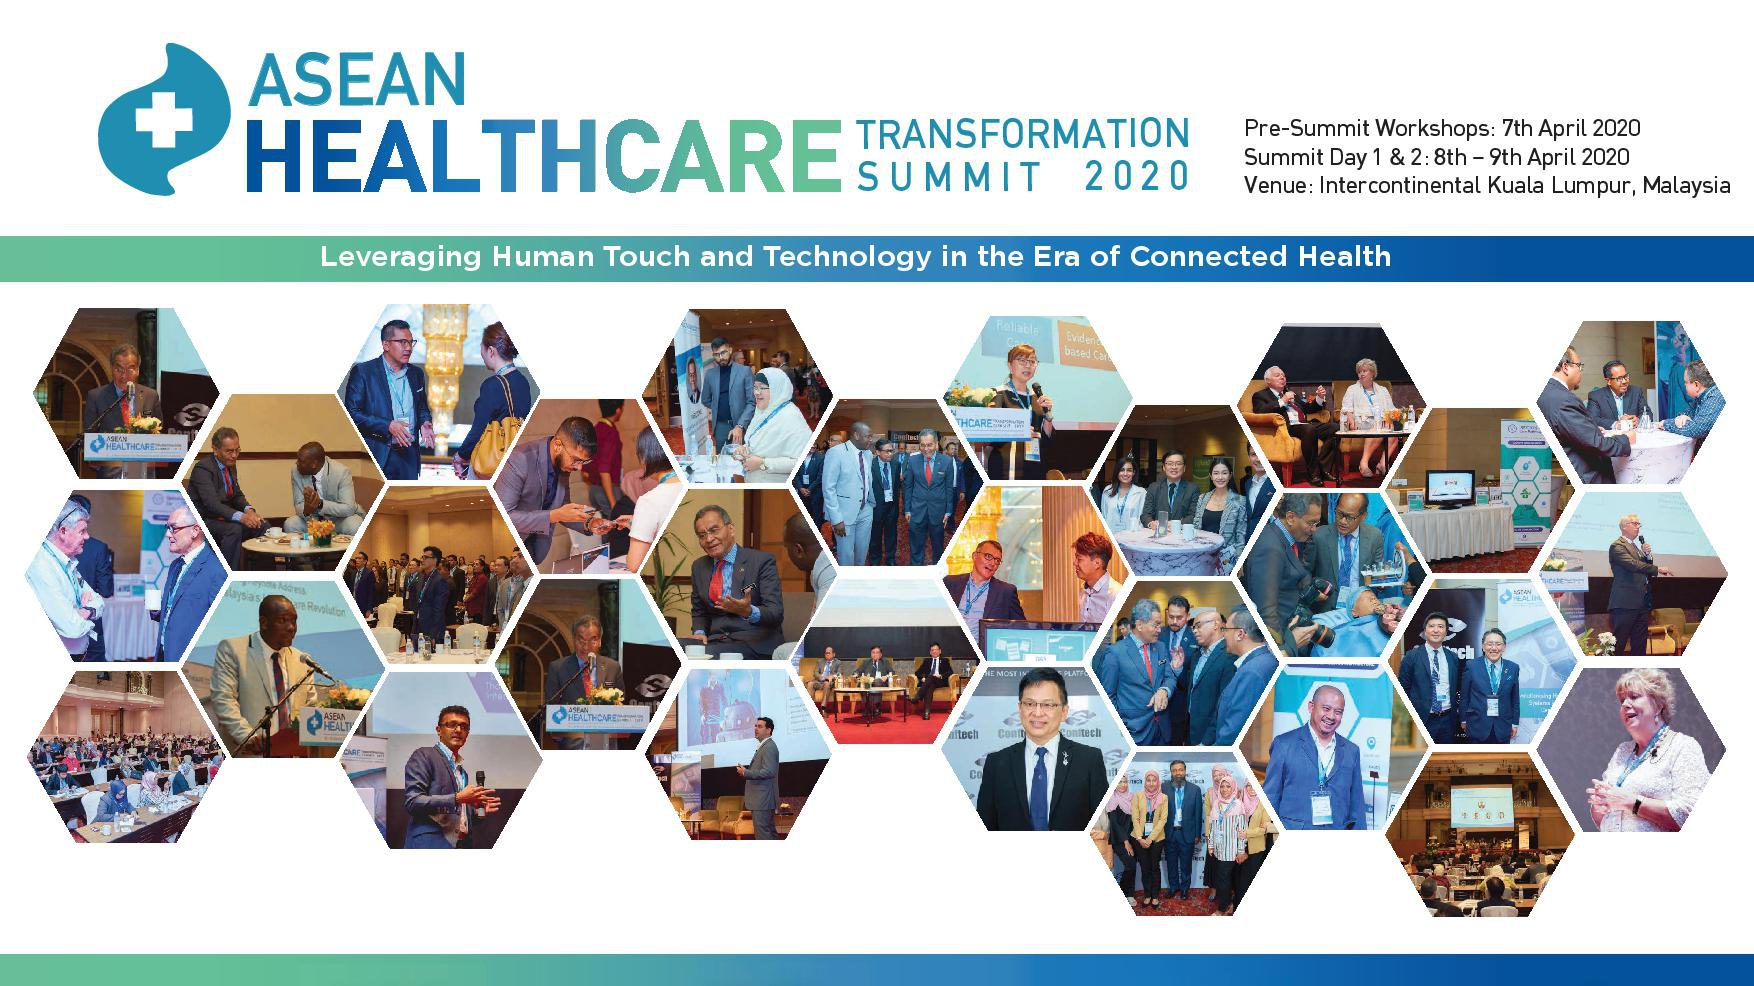 The 2nd ASEAN Healthcare Transformation organised by CT Asia